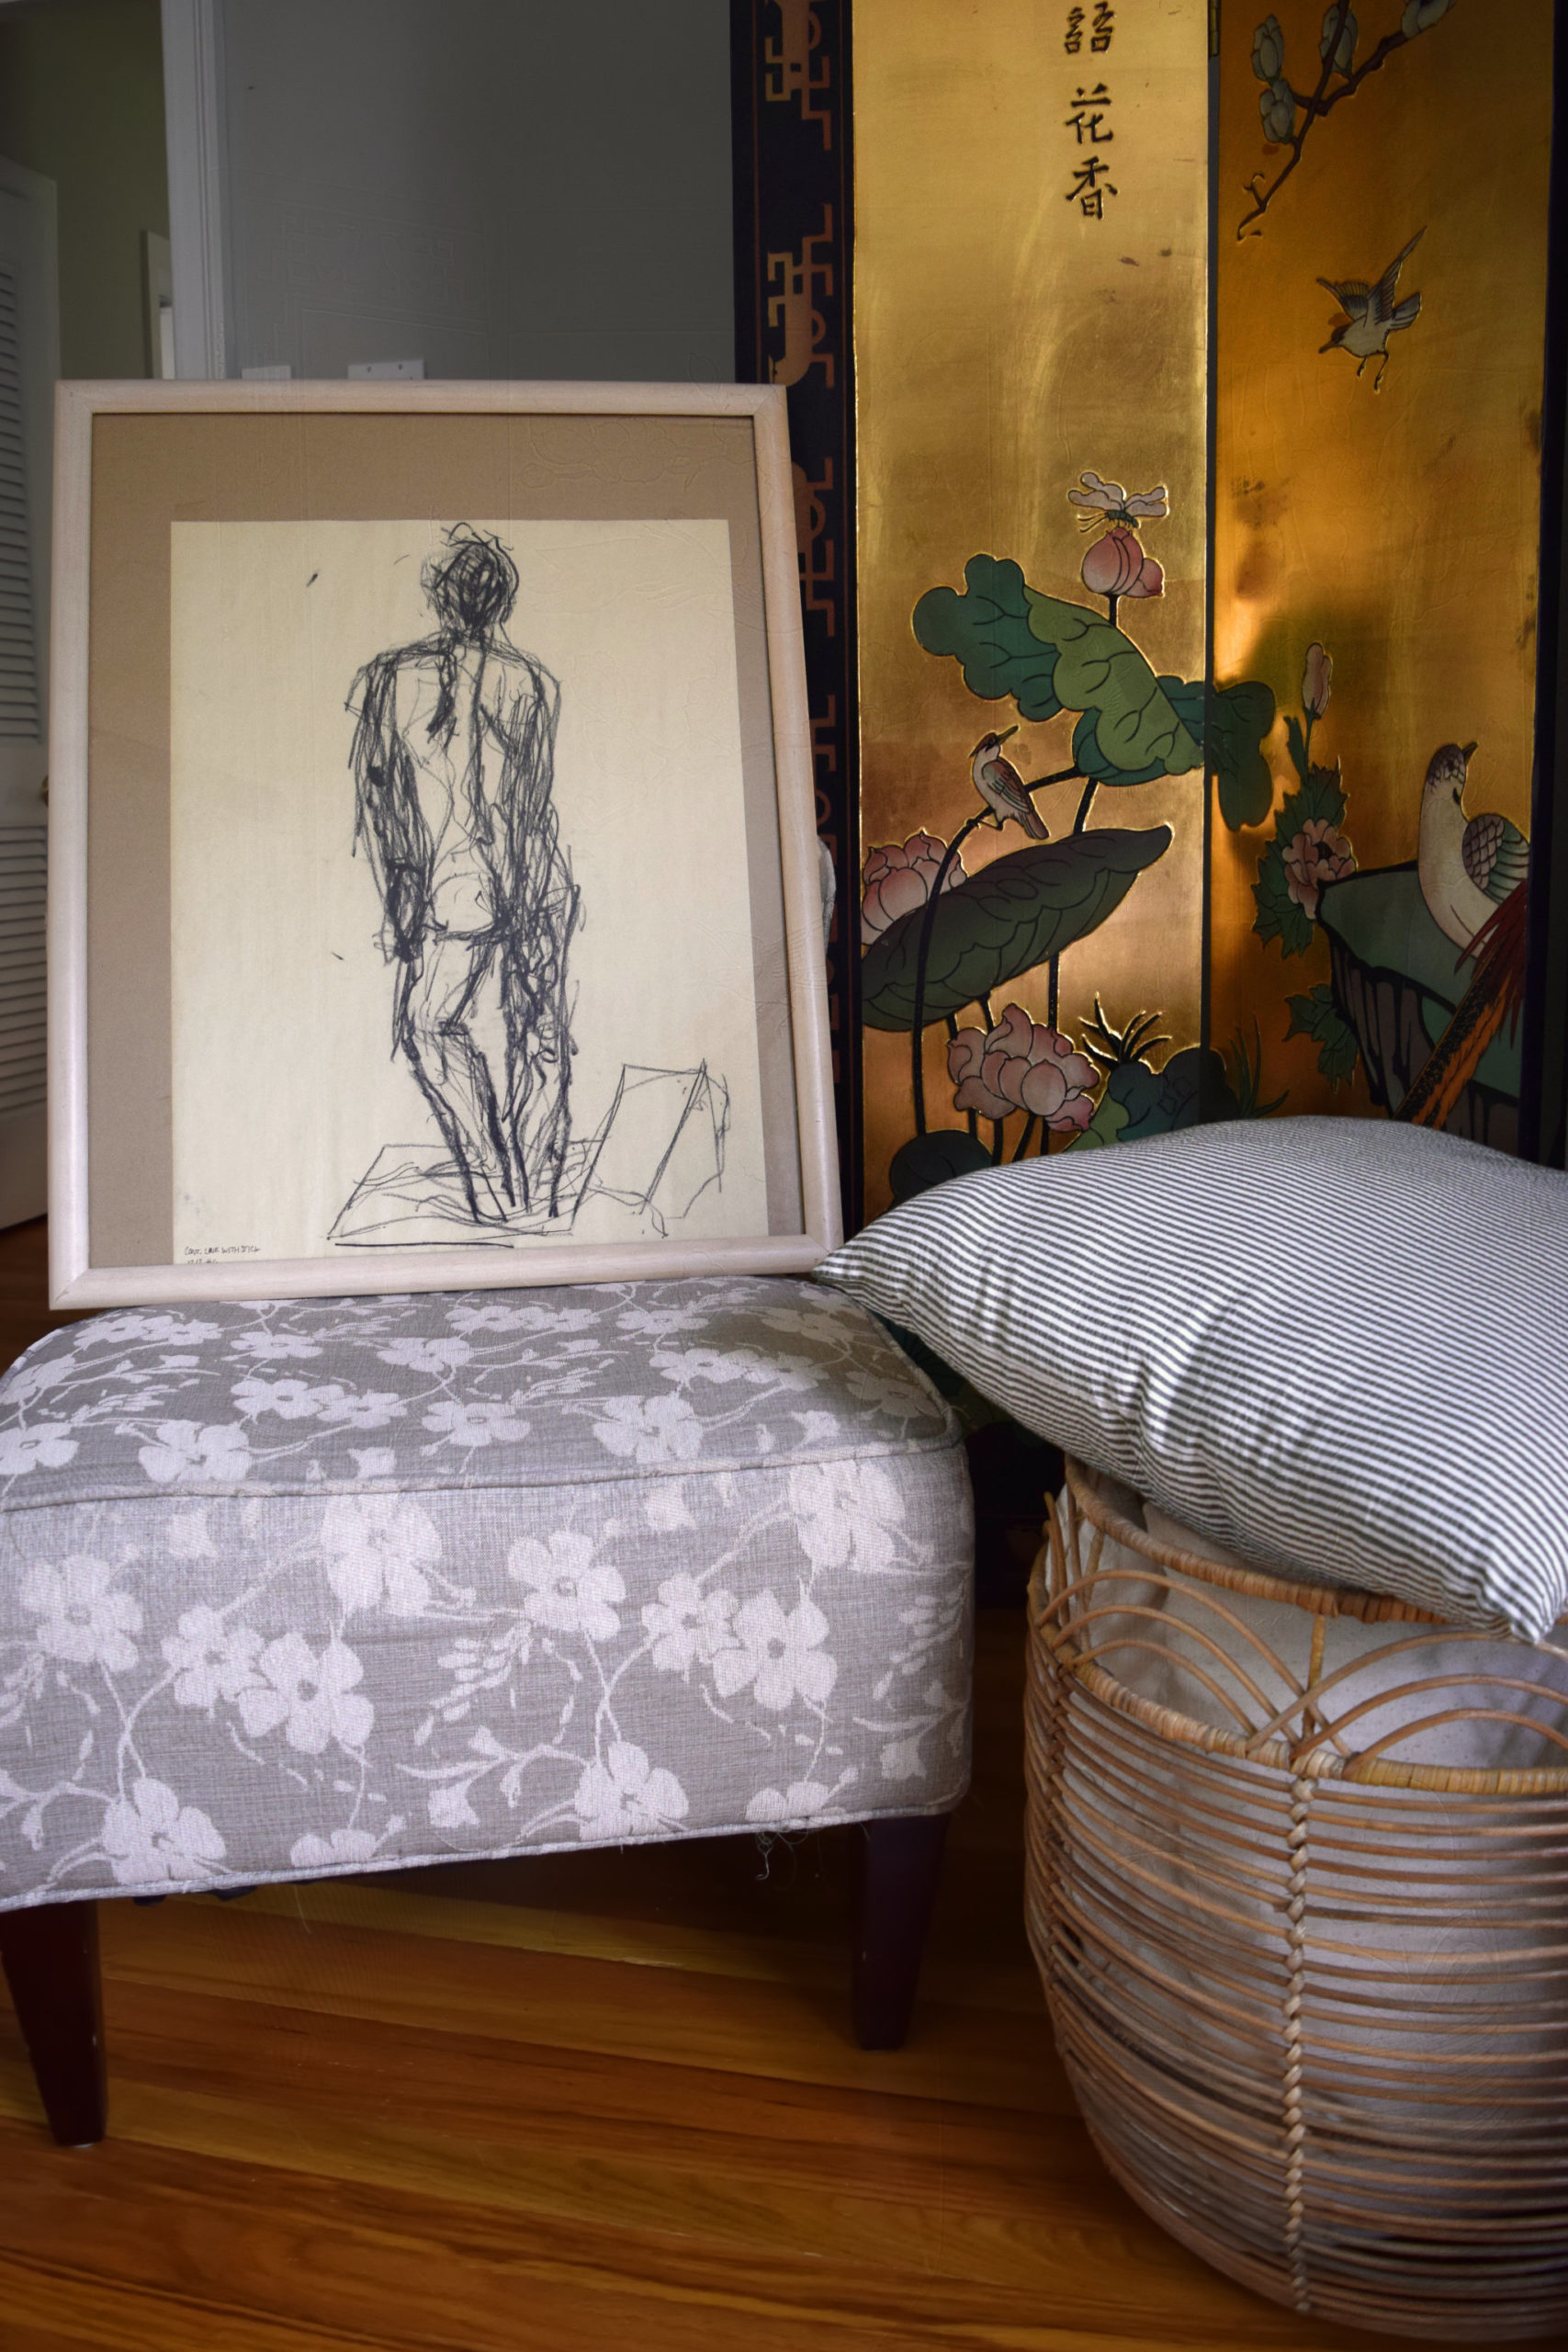 nude gesture drawing framed in front of our hiding elliptical